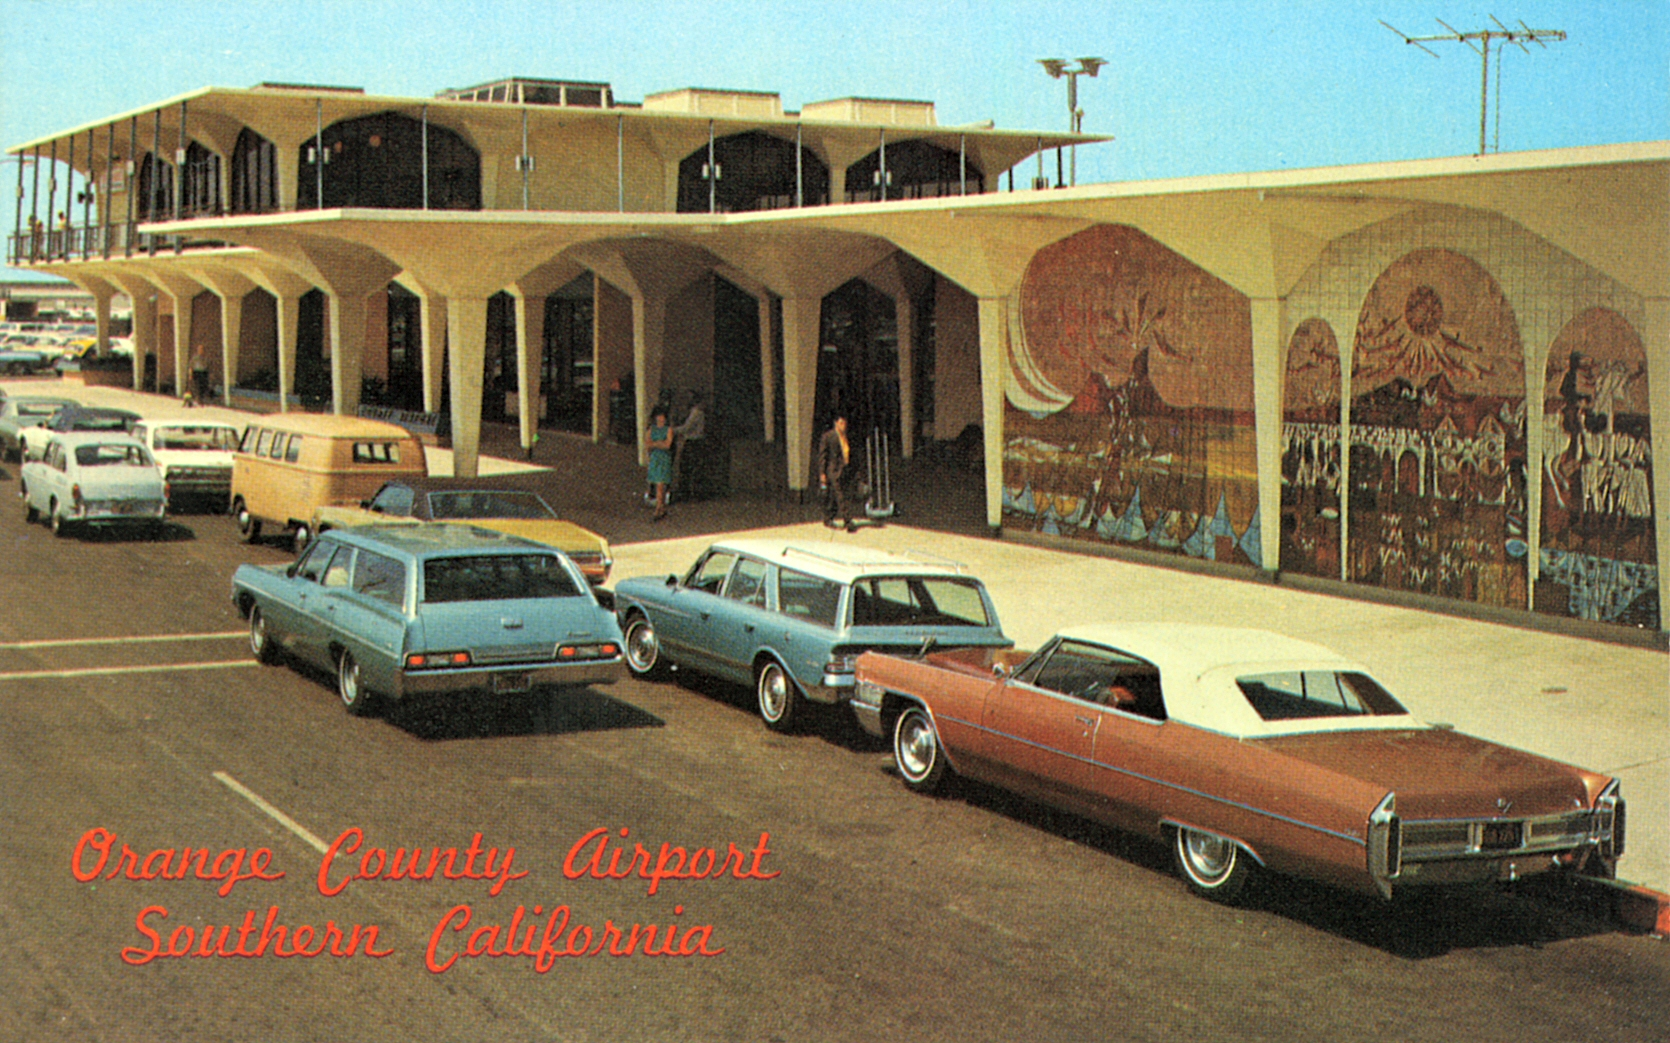 Orange county airport postcard 1970s flickr photo - Maison d architecte orange county californie ...